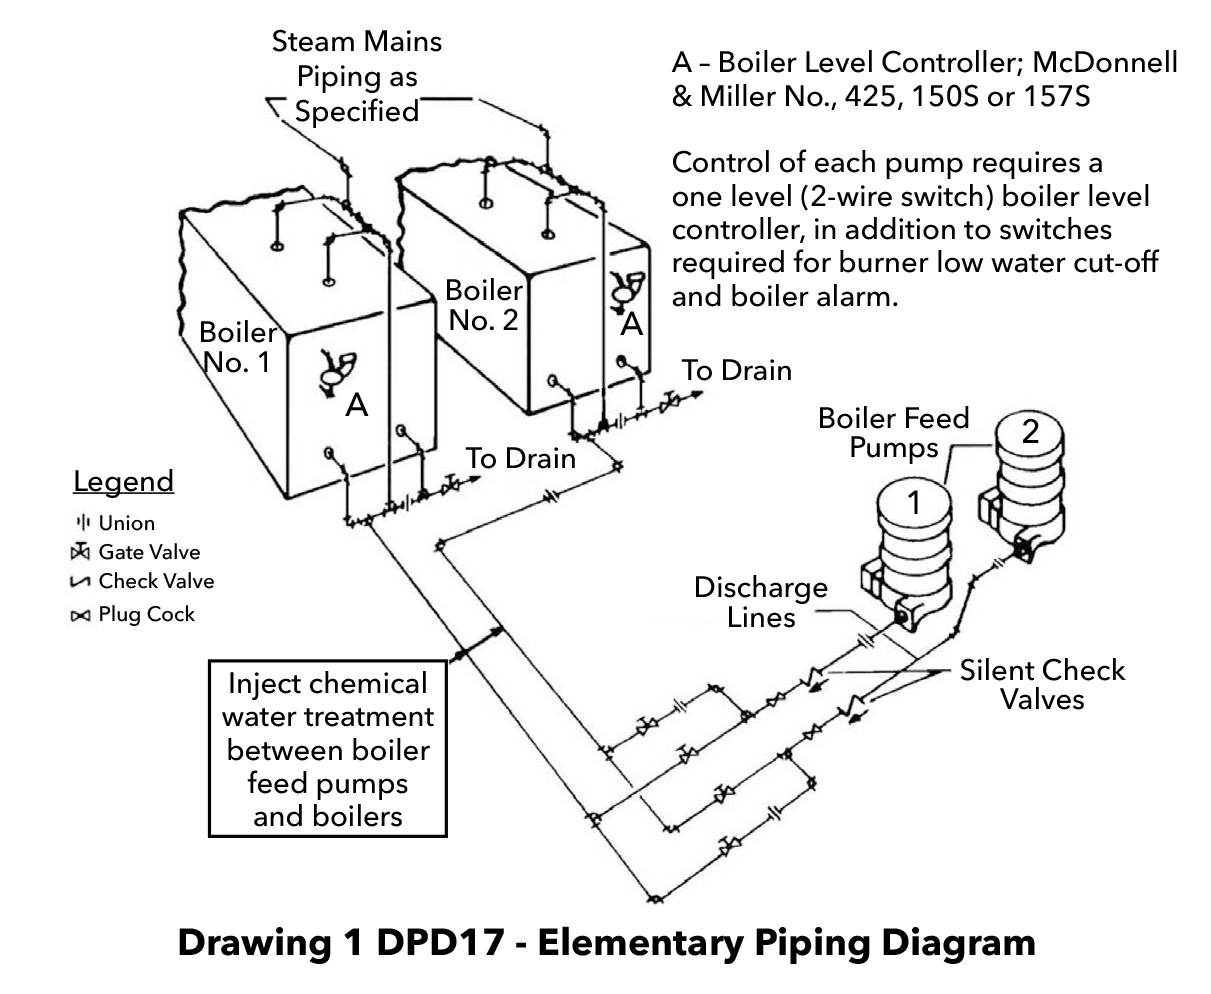 hight resolution of drawing 1 dpd08 a shows two boilers with an automatic standby arrangement in this arrangement either pump can feed a boiler with flow being directed to